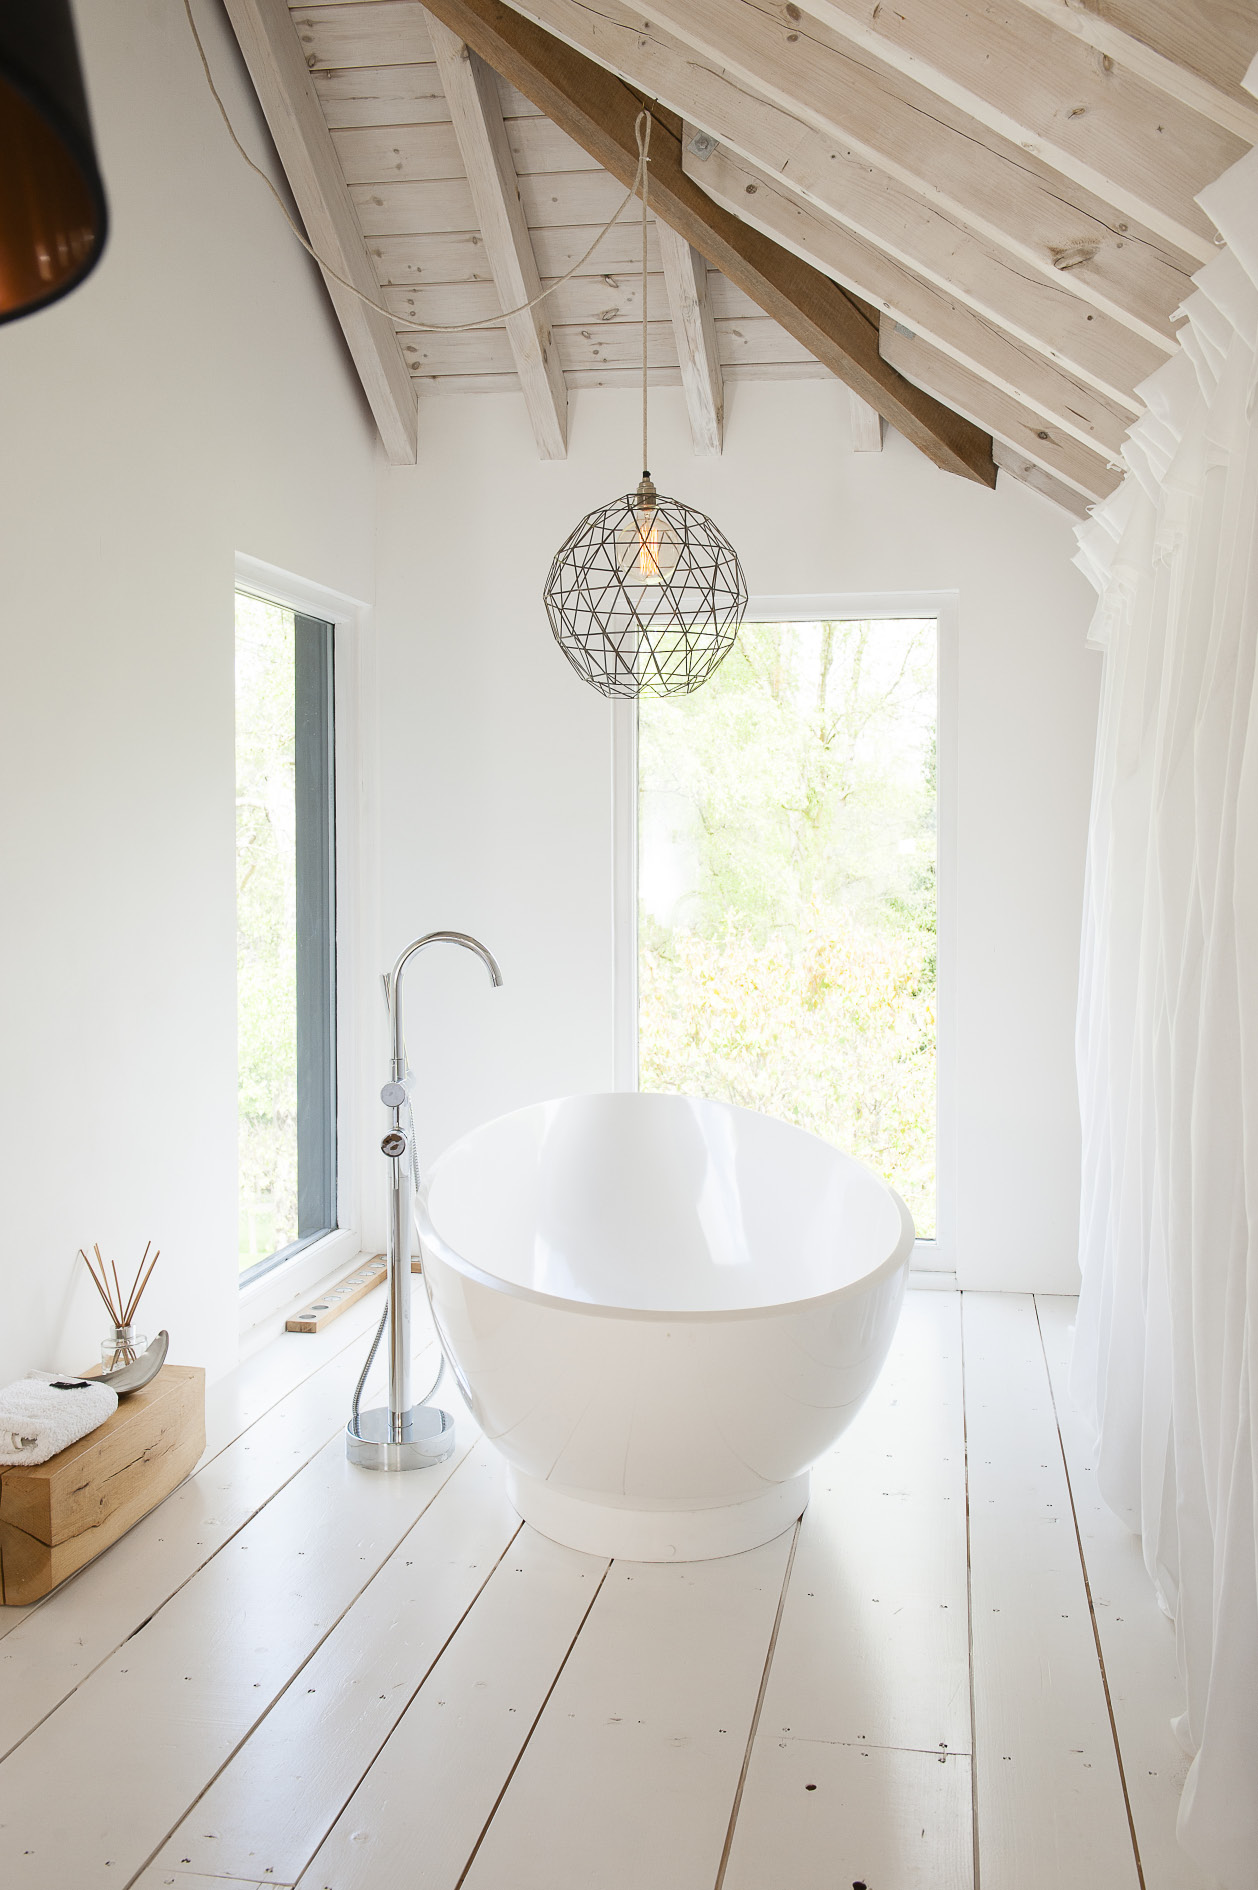 In one corner of the master bedroom a contemporary free-standing bath has been set in a double-aspect alcove overlooking the garden while at the other end is a spacious wet room